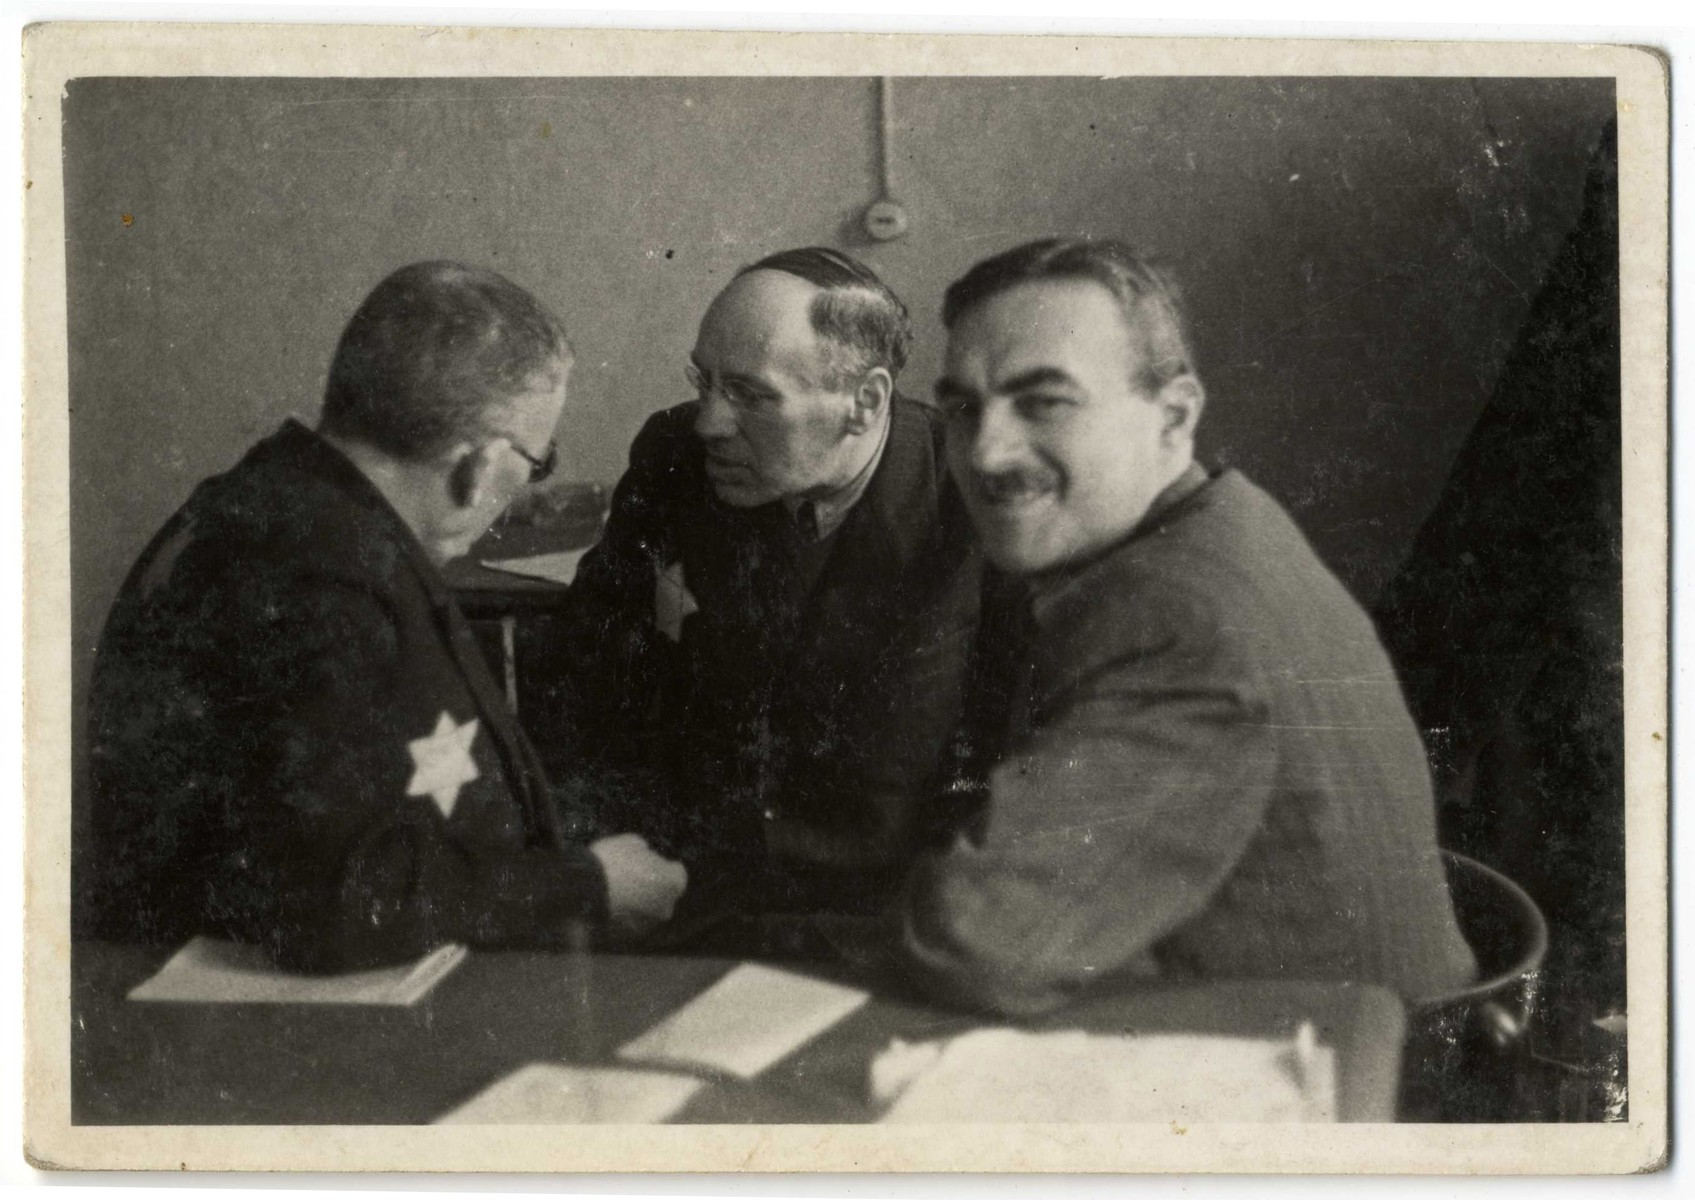 Directors of Lodz ghetto workshops meet in an office.   Pictured on the far right is Gustaw Gerson, the director of the Zentral Einkaufstelle.  In the center is Dawid Warszawski, head of the textile workshops.